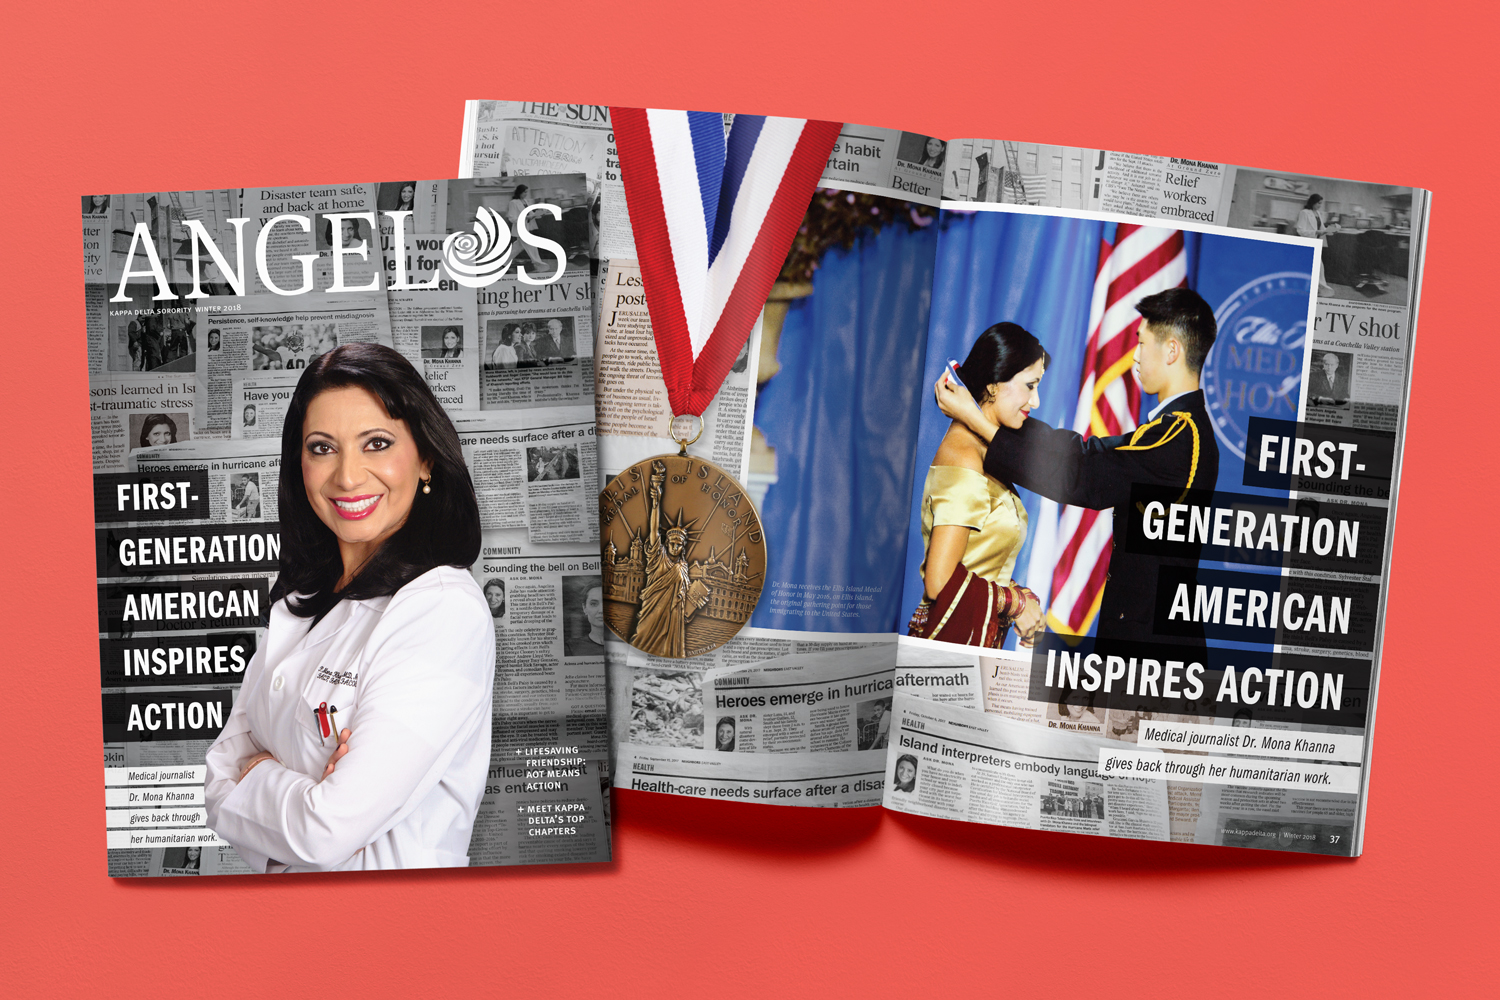 First-Generation American Inspires Action: Medical journalist Dr. Mona Khanna